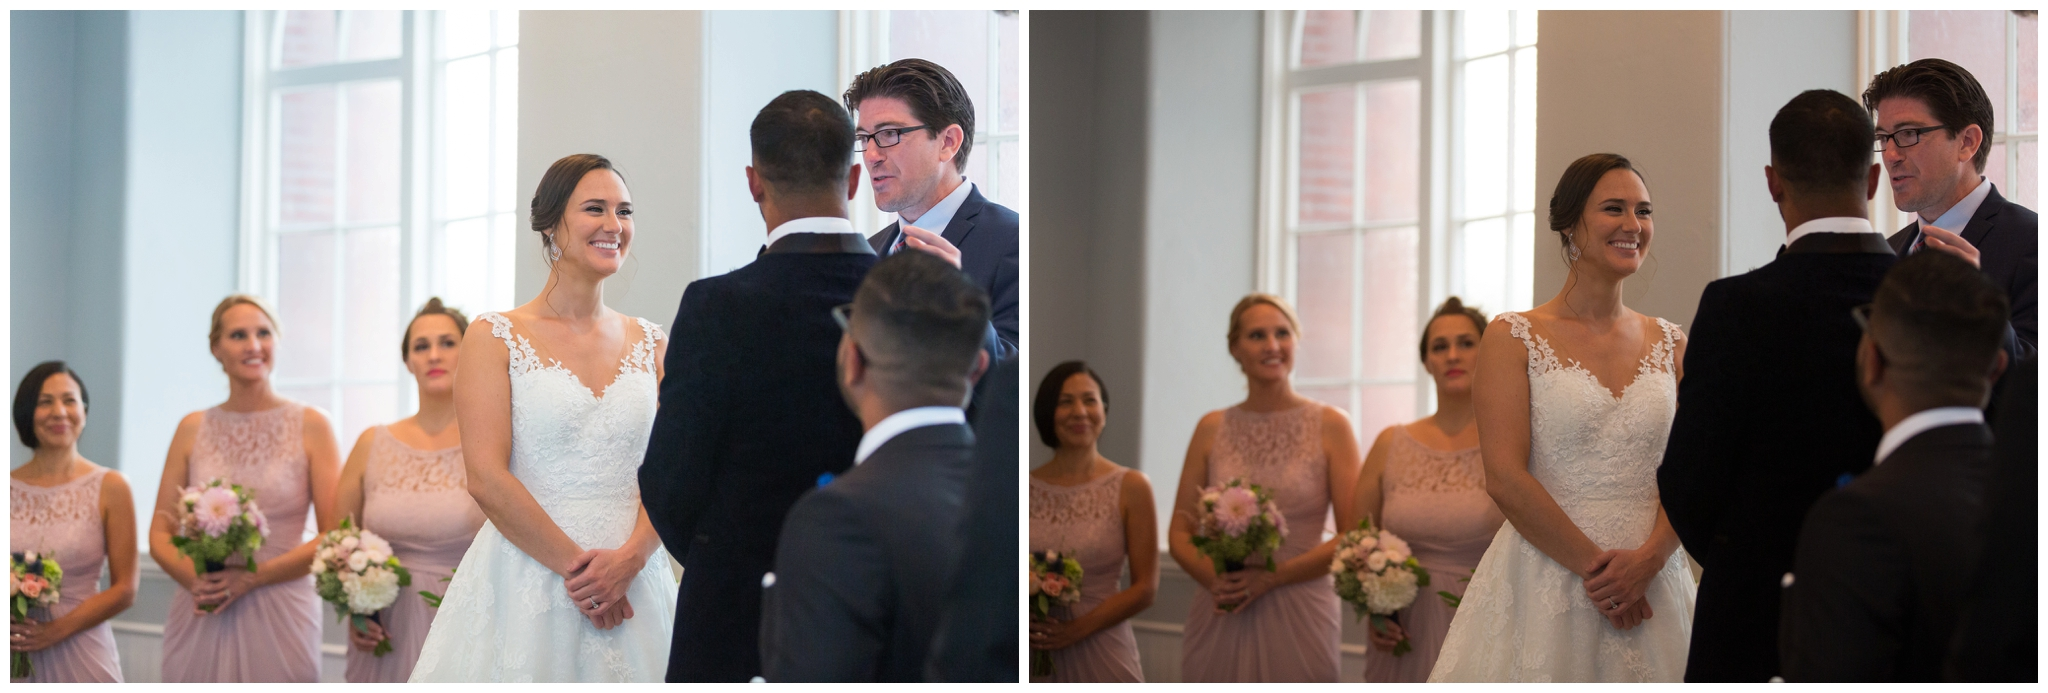 Color correction (left) and straight out of camera (right). See the difference -- color correction provides adjustments to overall exposure, shadows, sharpness, noise reduction, and more that the camera just can't do itself.